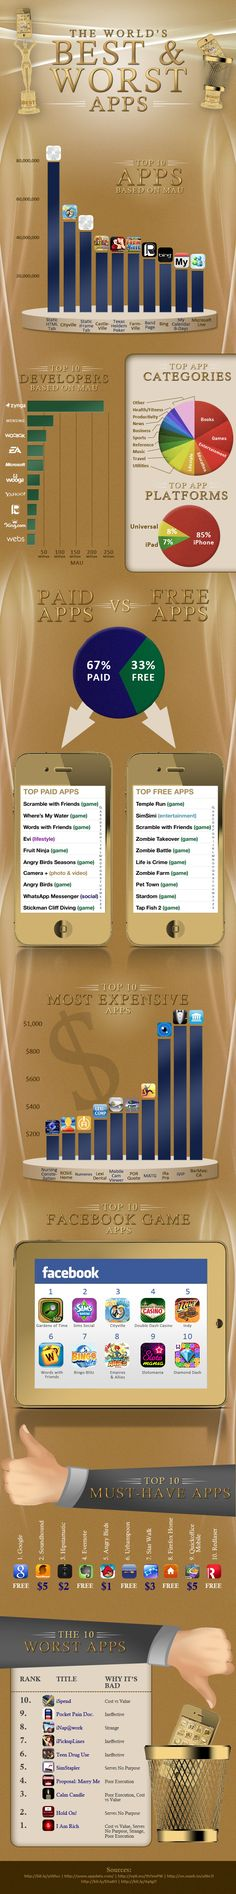 the world's best and worst apps:  #Facebook apps, #iPhone apps, #Android apps currently on the market.